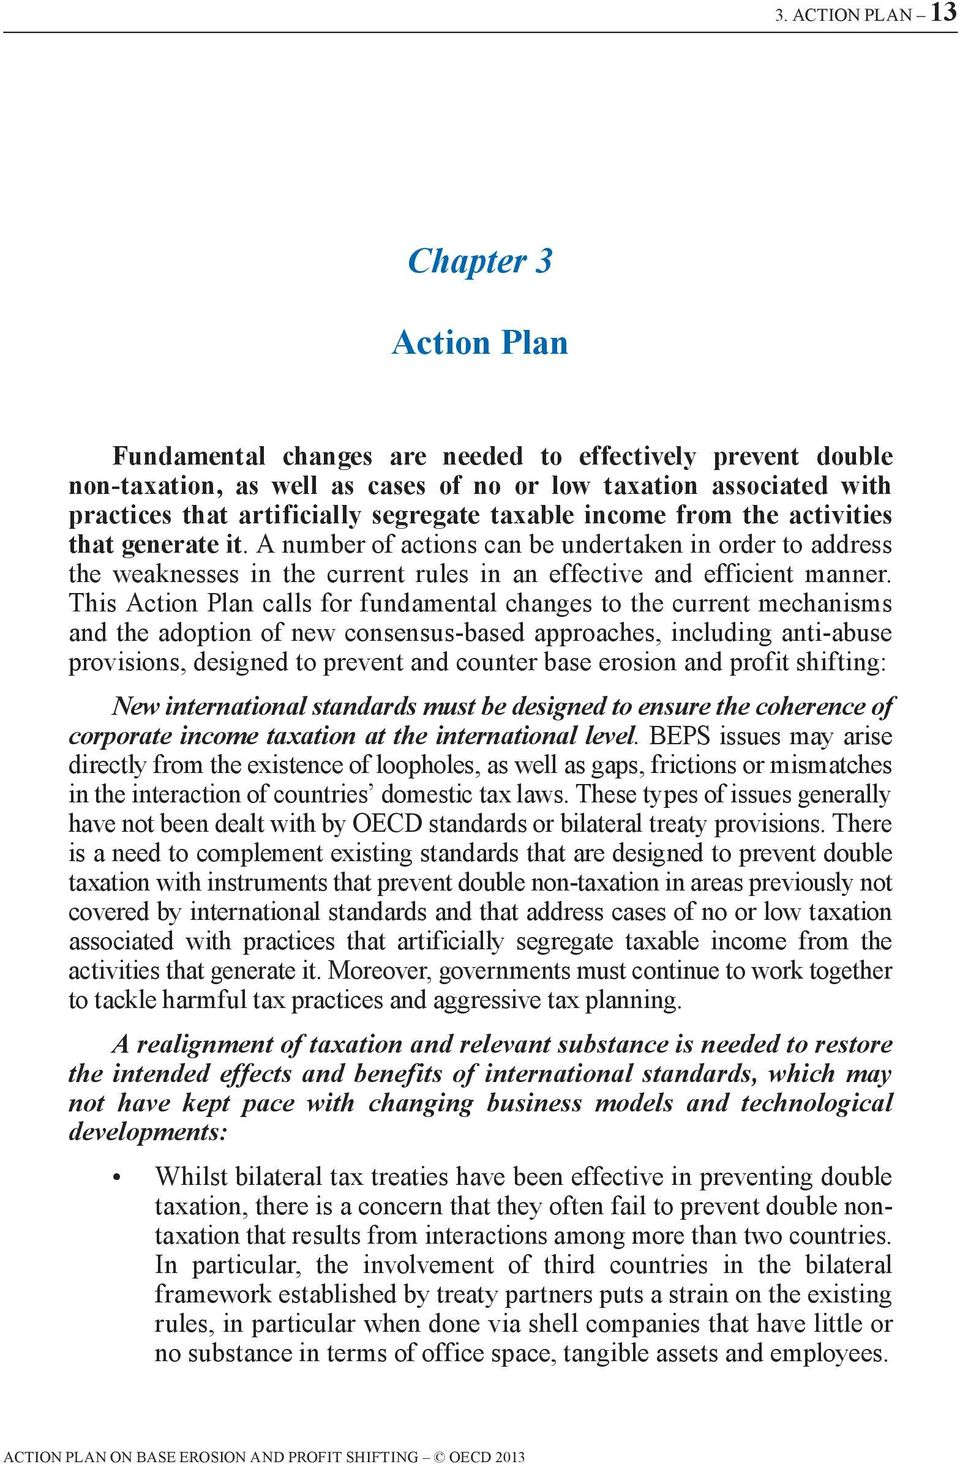 This Action Plan calls for fundamental changes to the current mechanisms and the adoption of new consensus-based approaches, including anti-abuse provisions, designed to prevent and counter base